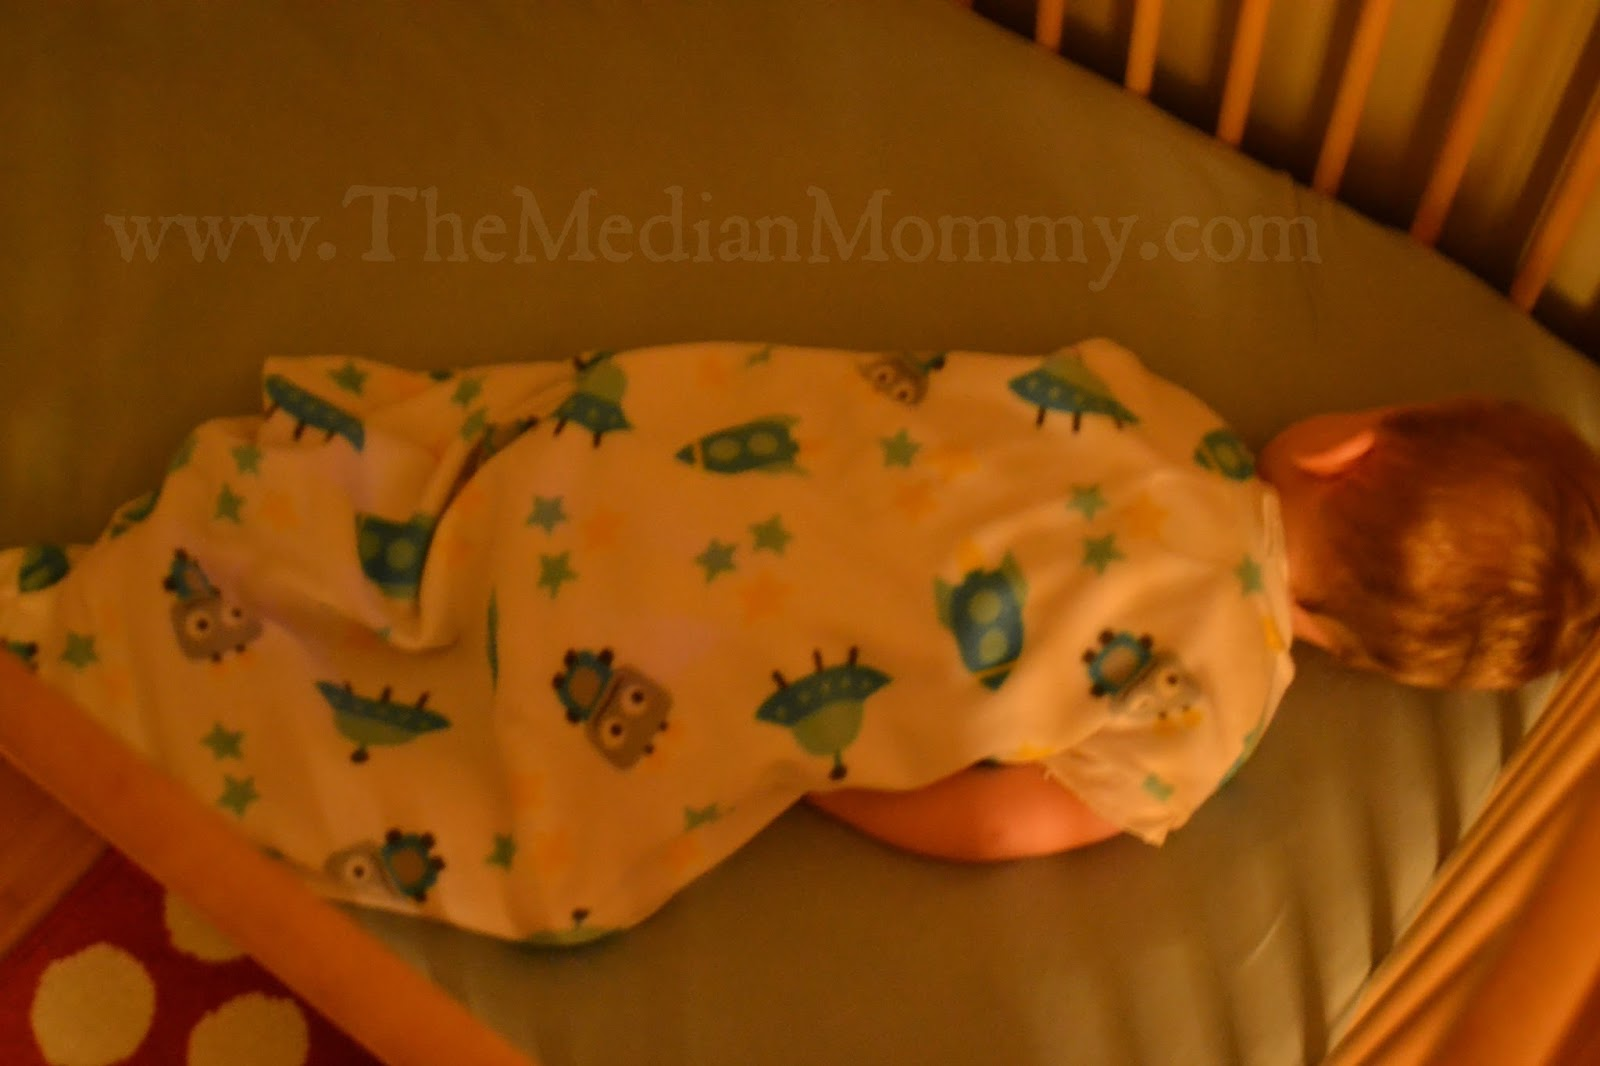 An Account from a Once Frazzled Sleep Deprived Mommy